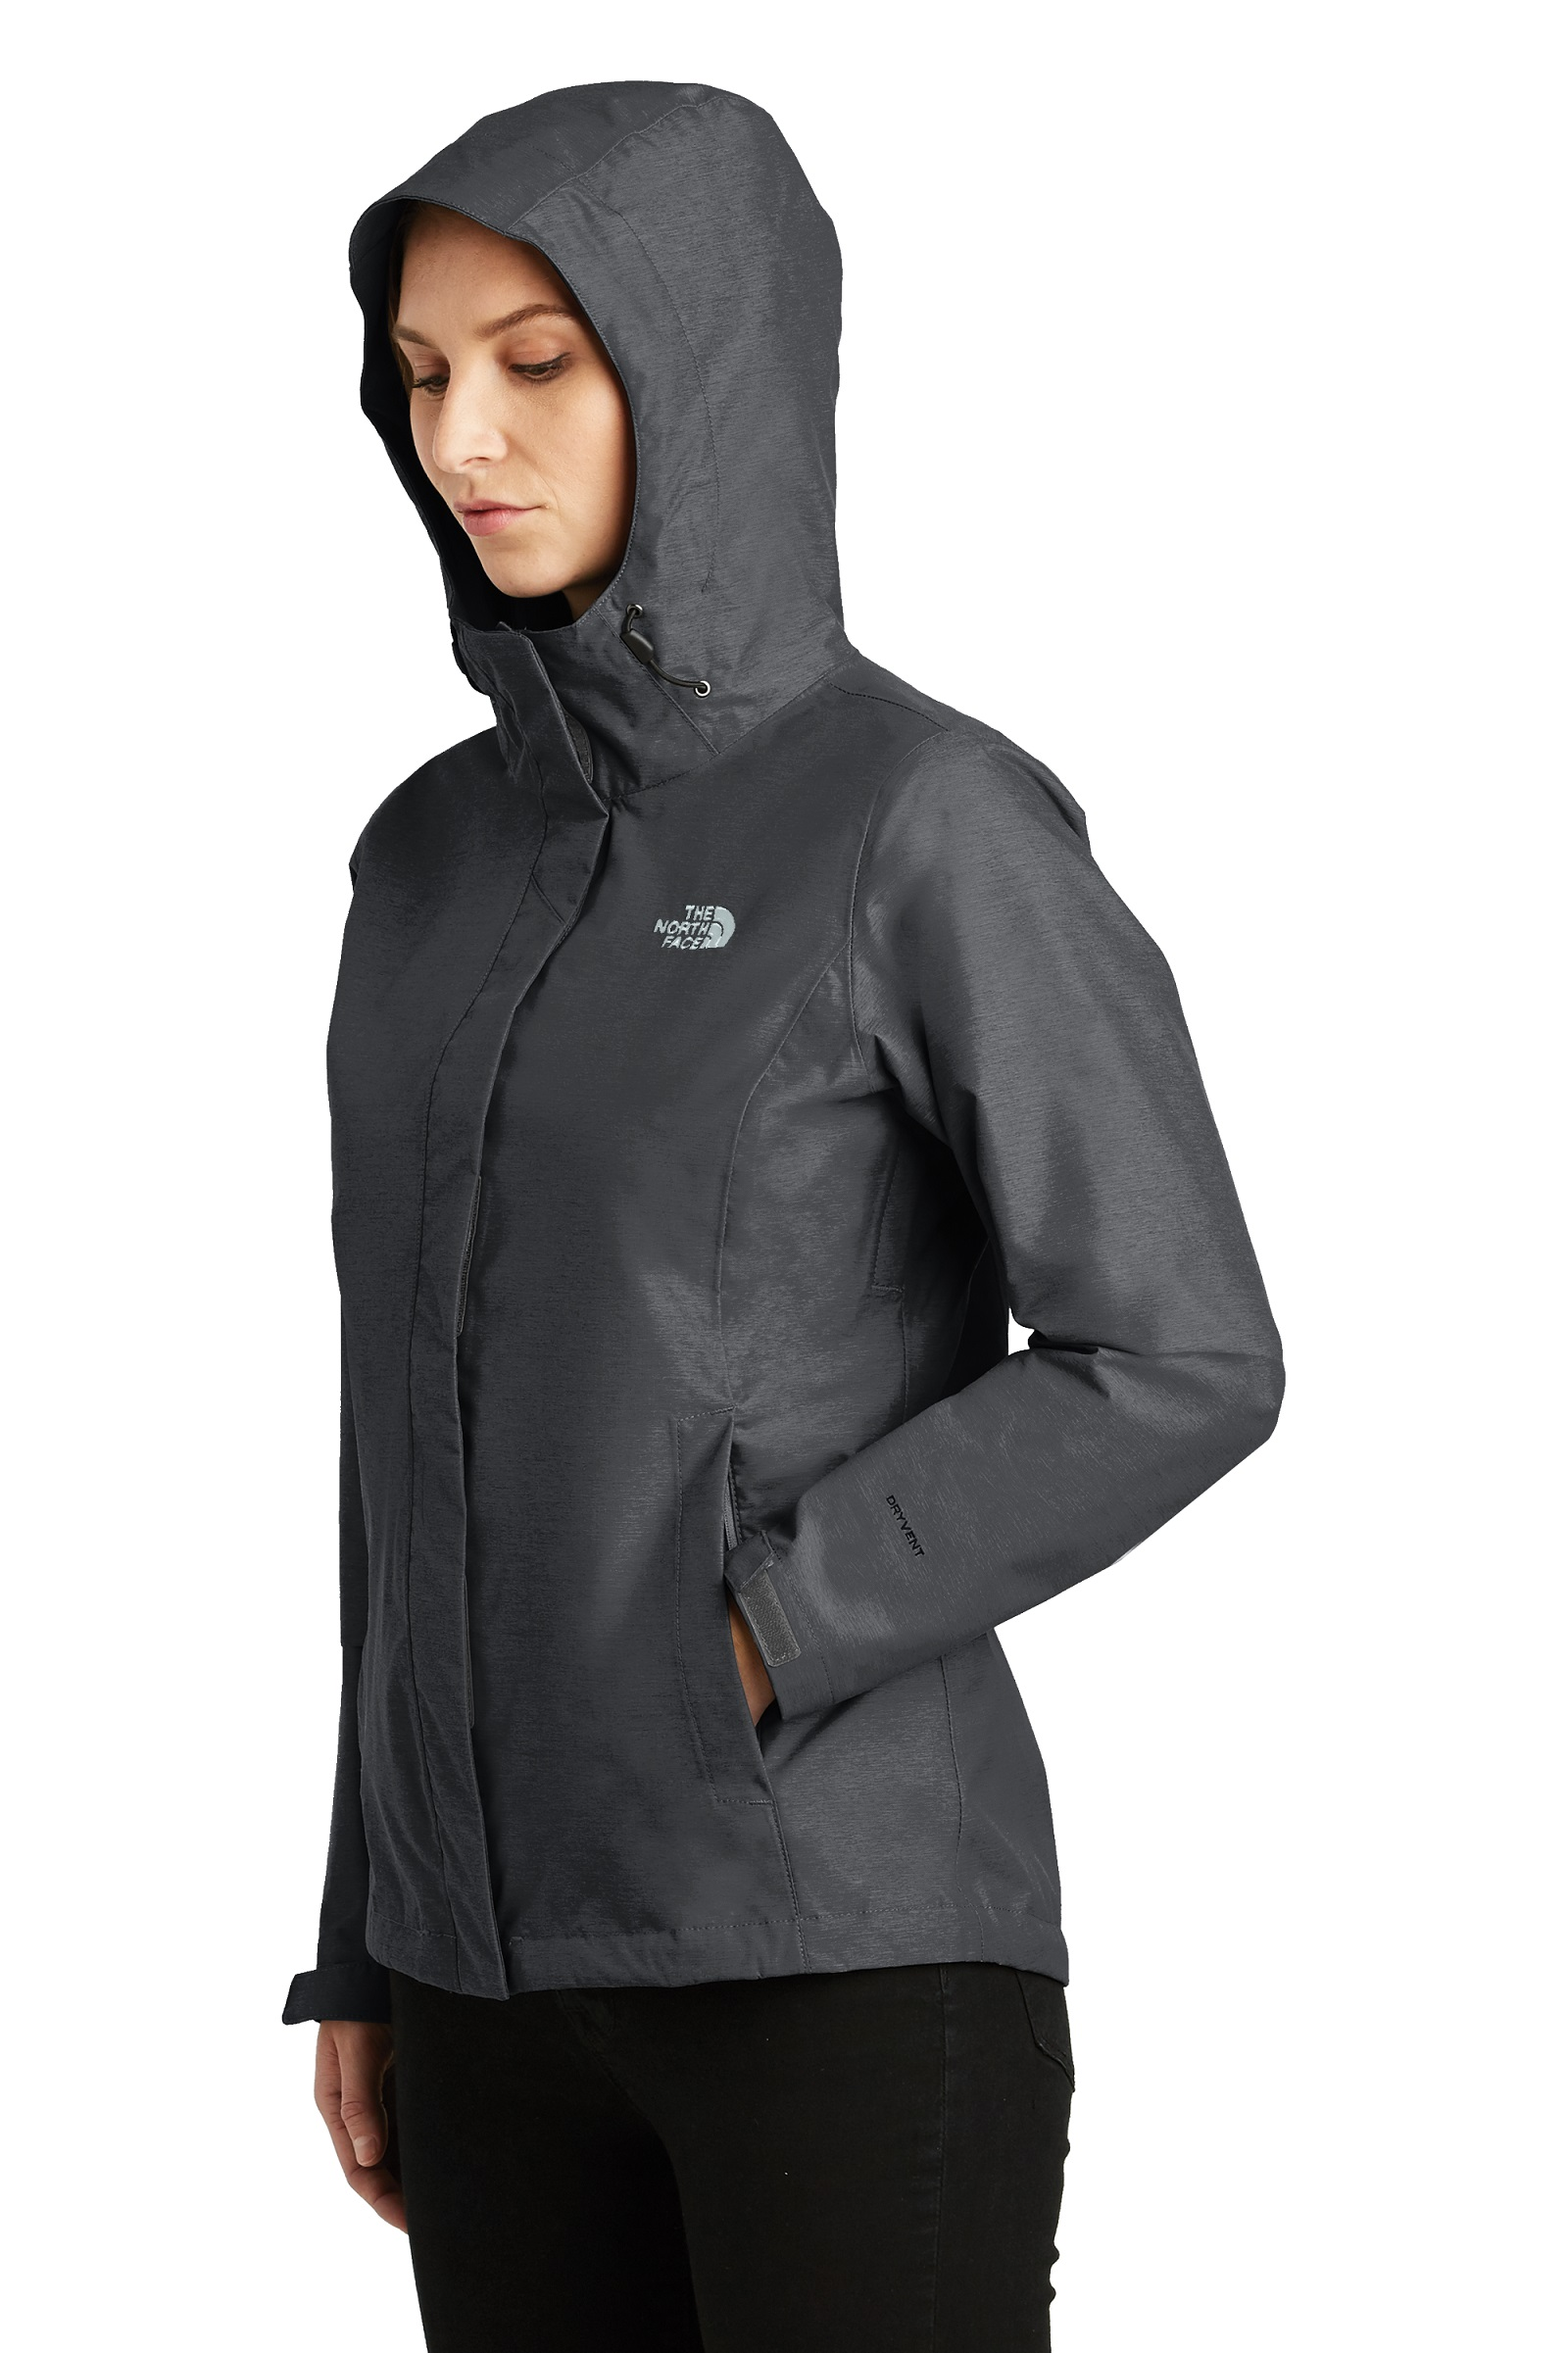 5a8ad8132 The North Face Women's DryVent Rain Jacket | The North Face